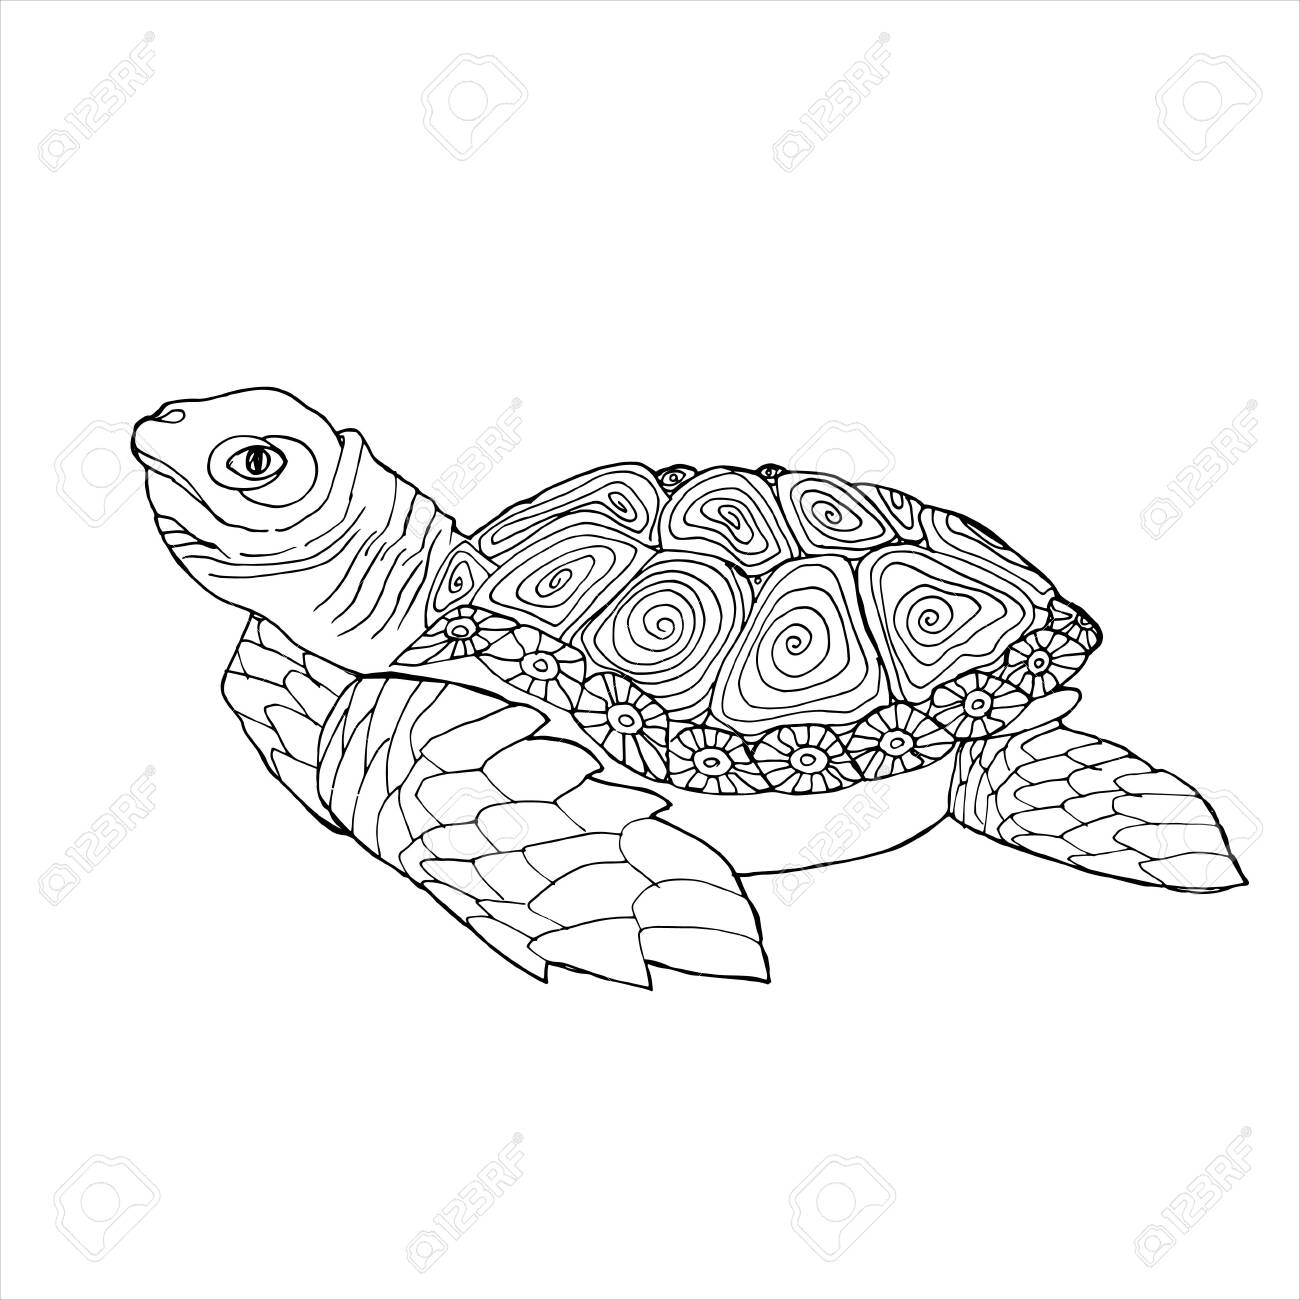 Sea Turtle Coloring Book Hand Drawing Coloring Book For Children Royalty Free Cliparts Vectors And Stock Illustration Image 143775296